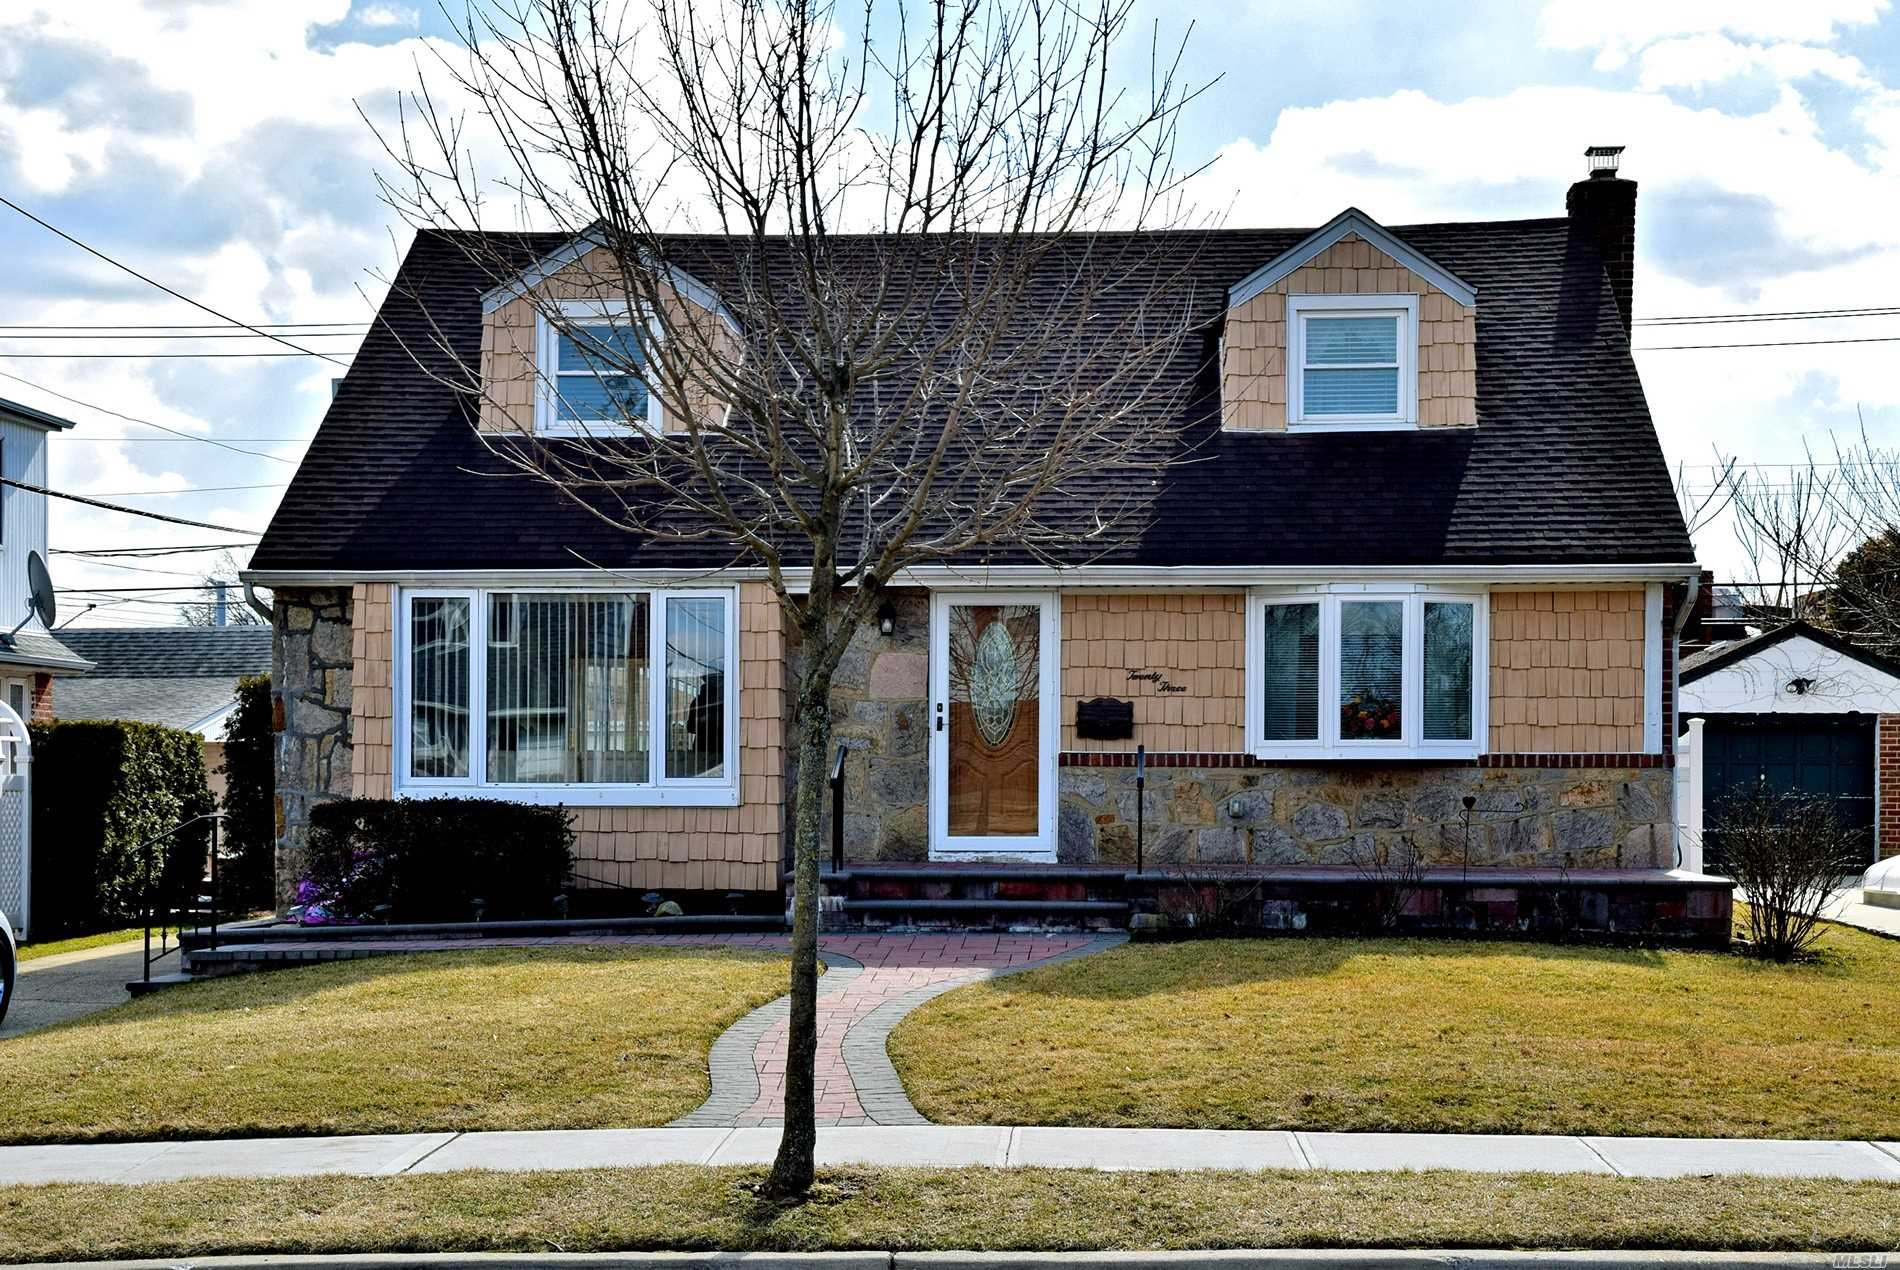 Spacious 4/6 Bedrooms Expanded Cape, Perfect For Mother / Daughter With Proper Permits, Freshly Painted, Wood Floors,  East Willston Schools, Convenient Location To Transportation , Shopping And Restaurants,